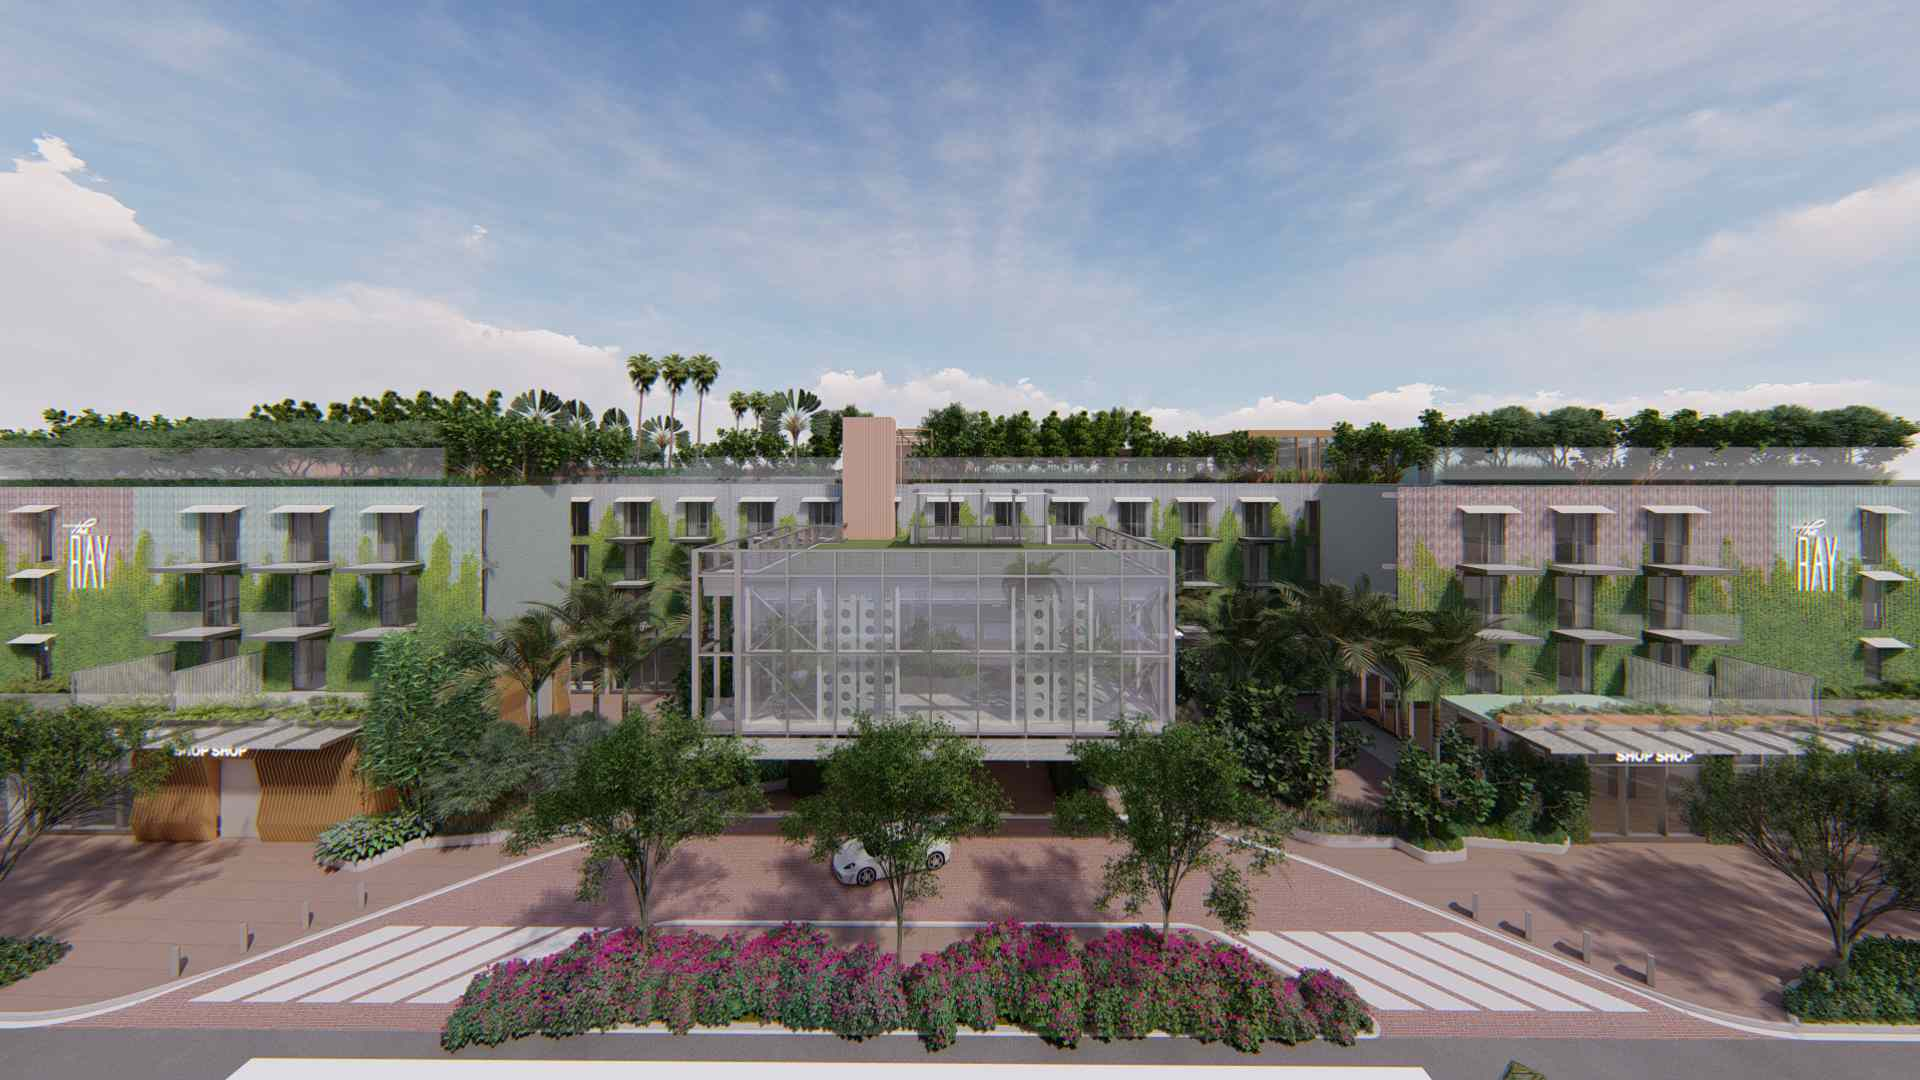 Rendering of The Ray hotel in Delray Beach showing the exterior and glass cube feature